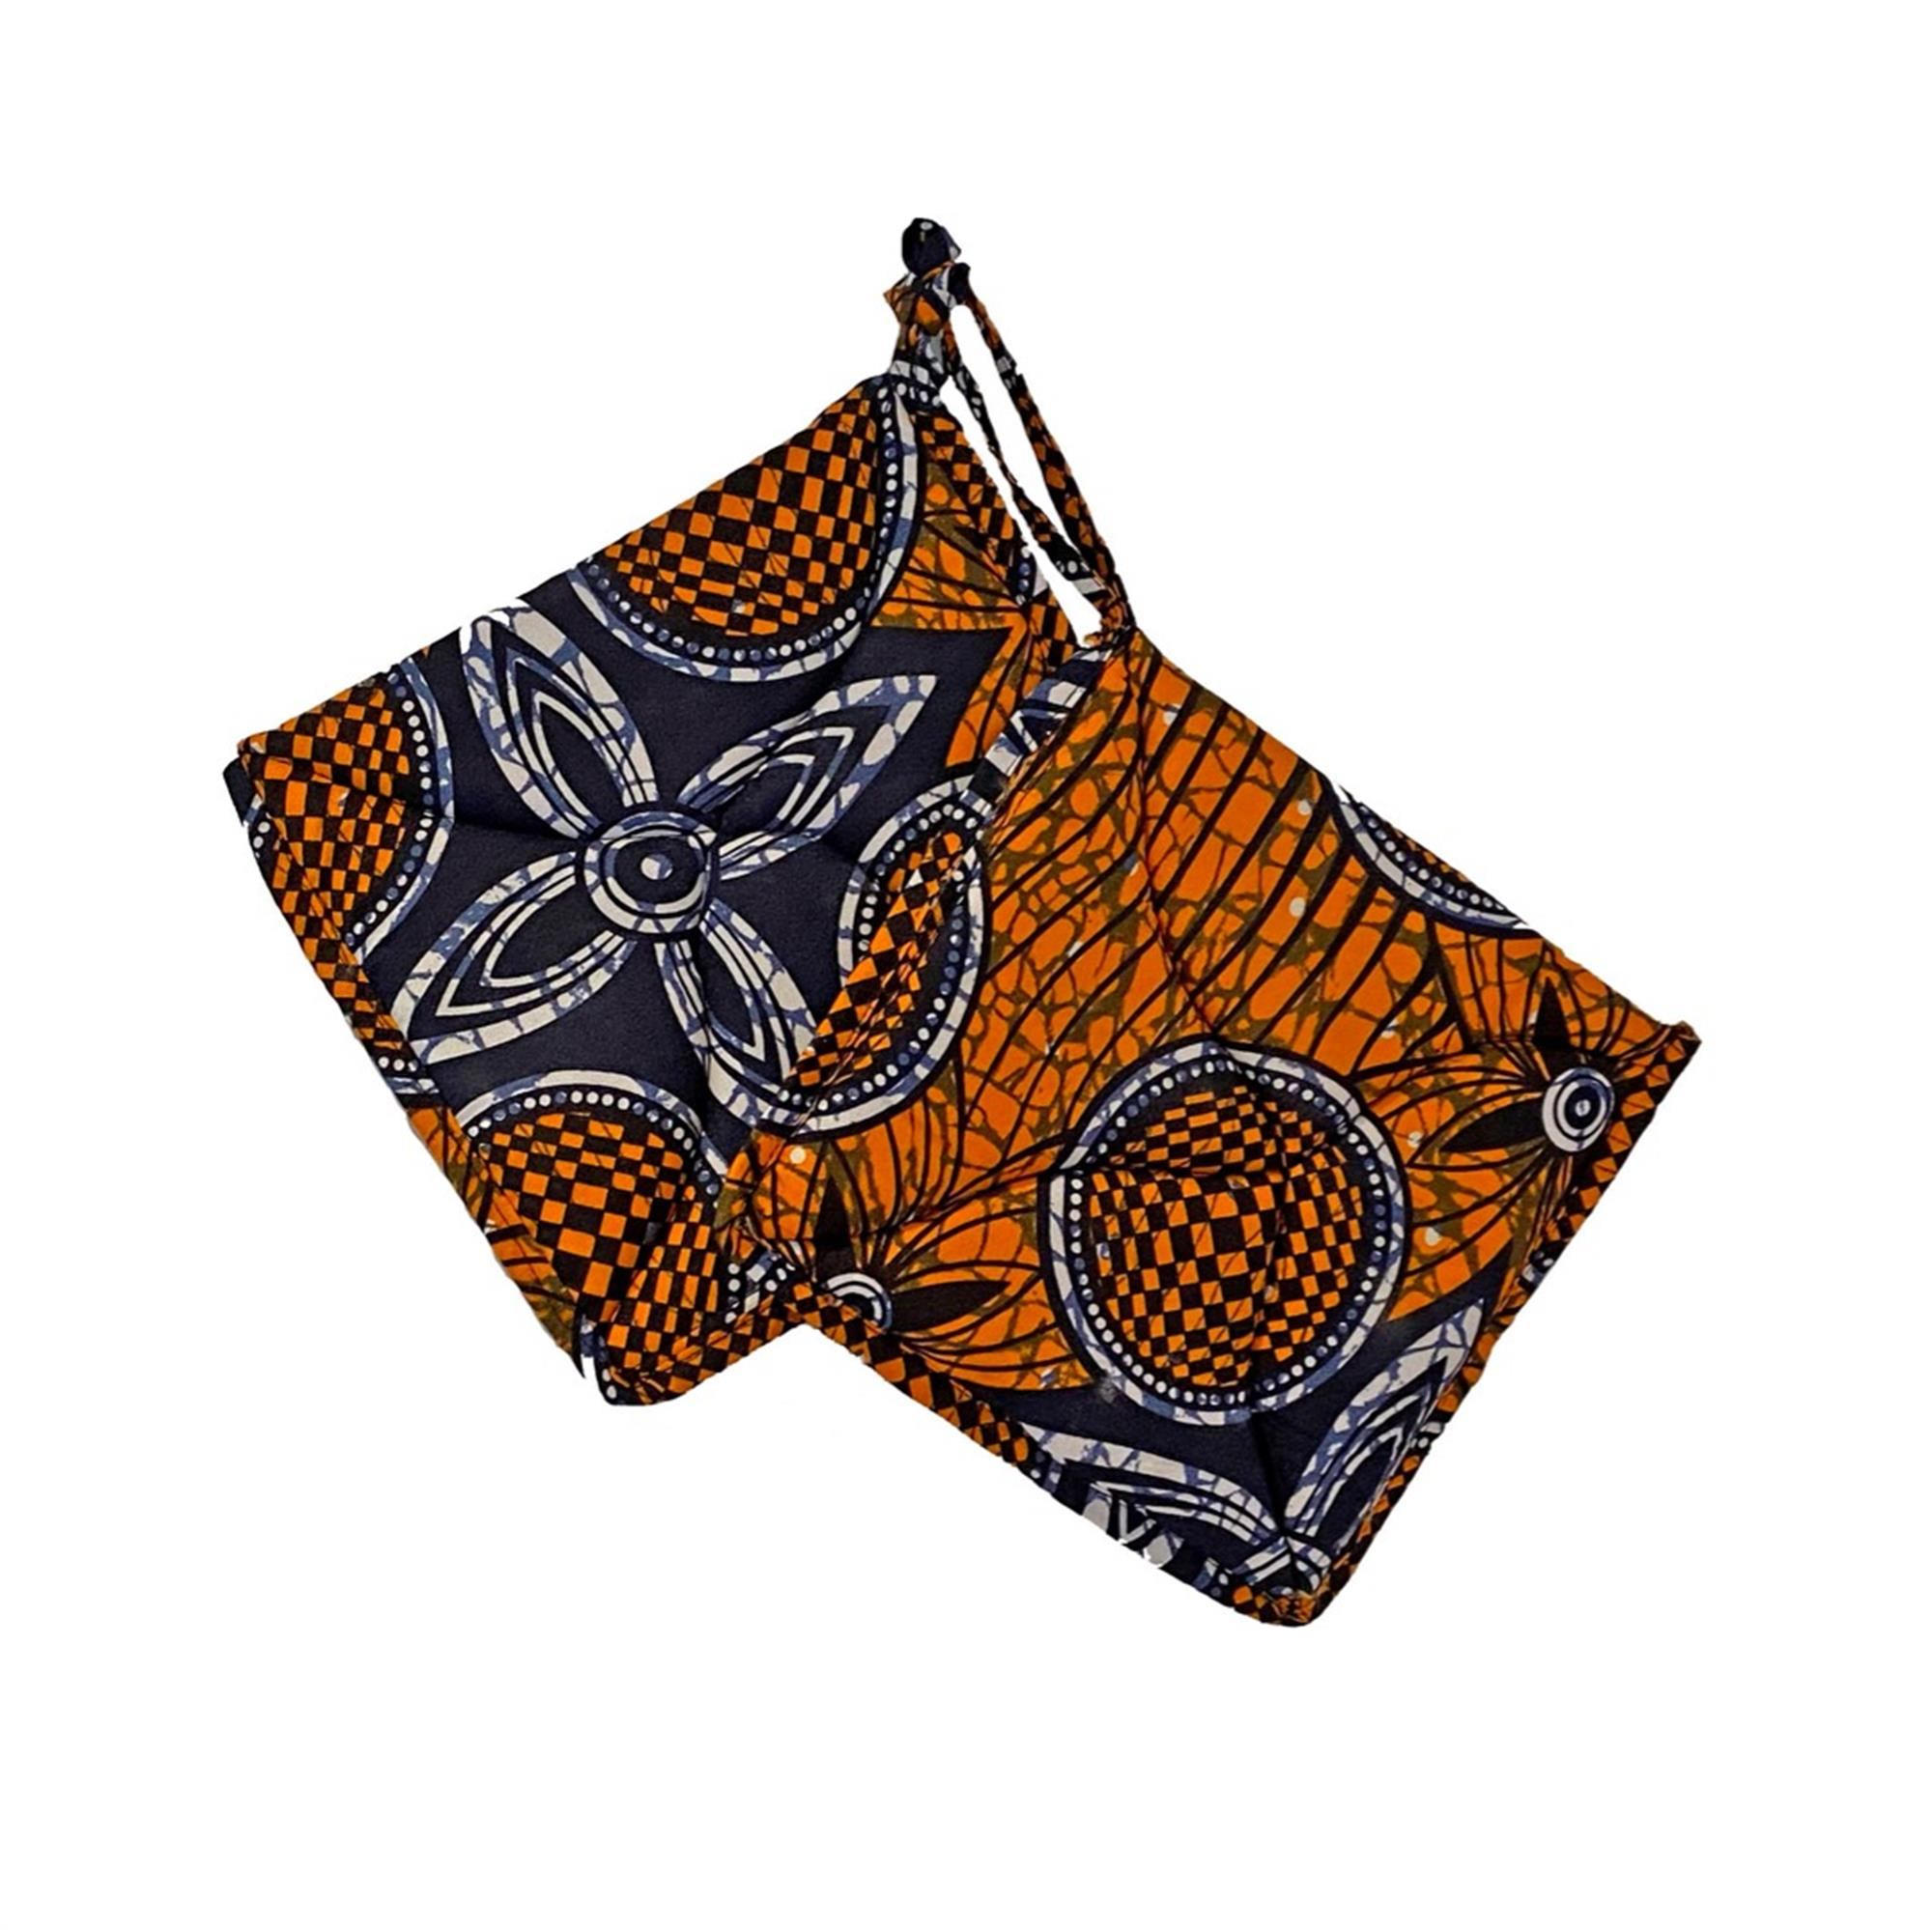 Pot Holders from Zambia